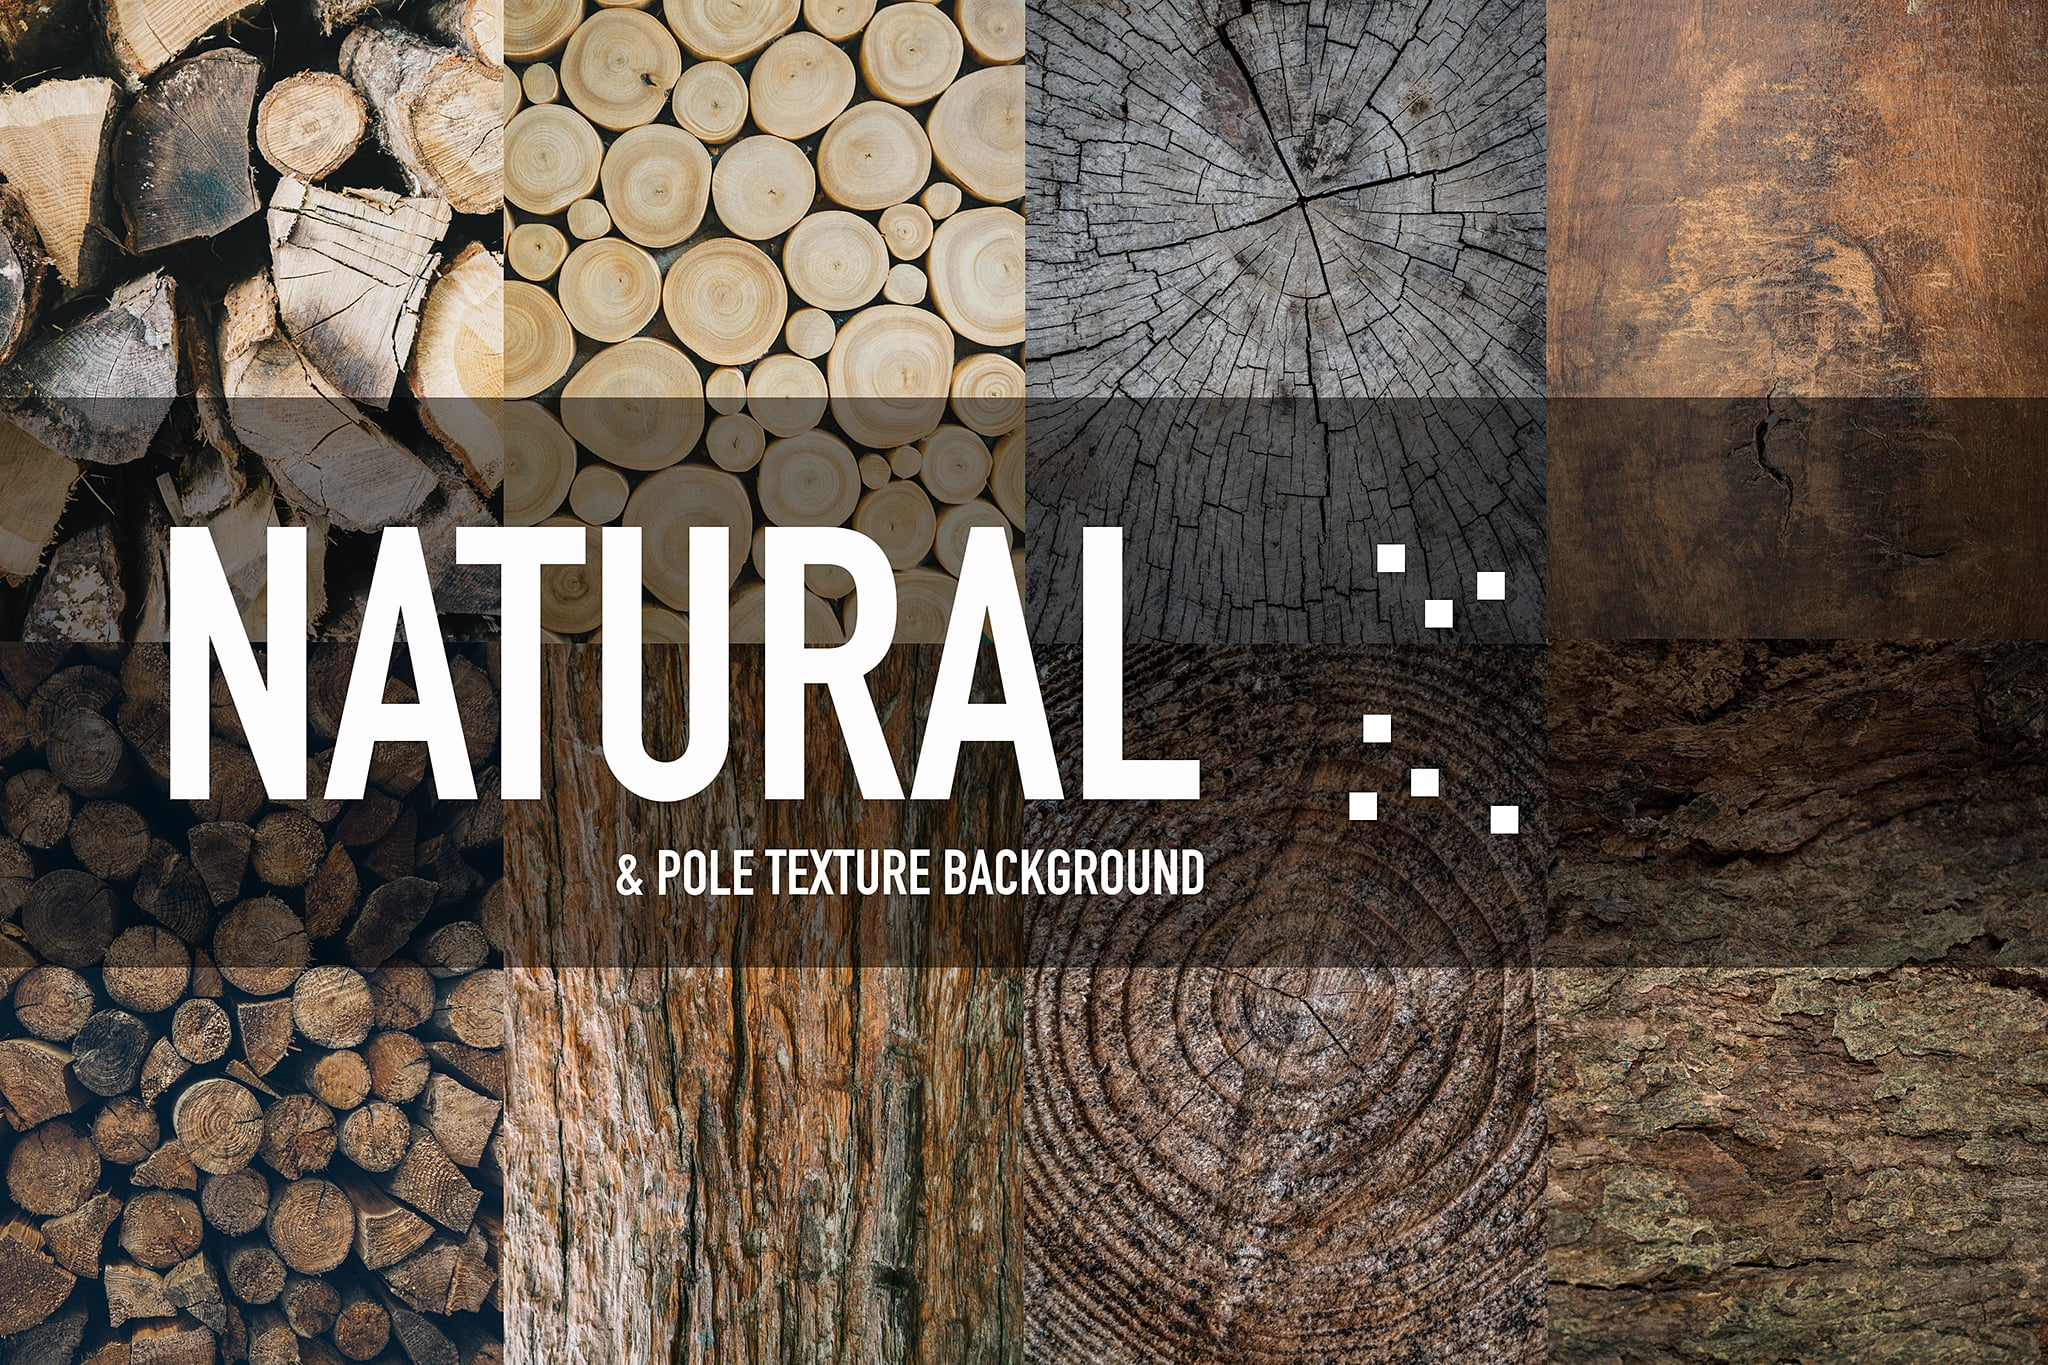 A stack of wood of different colors and textures all piled up, wood texture background.